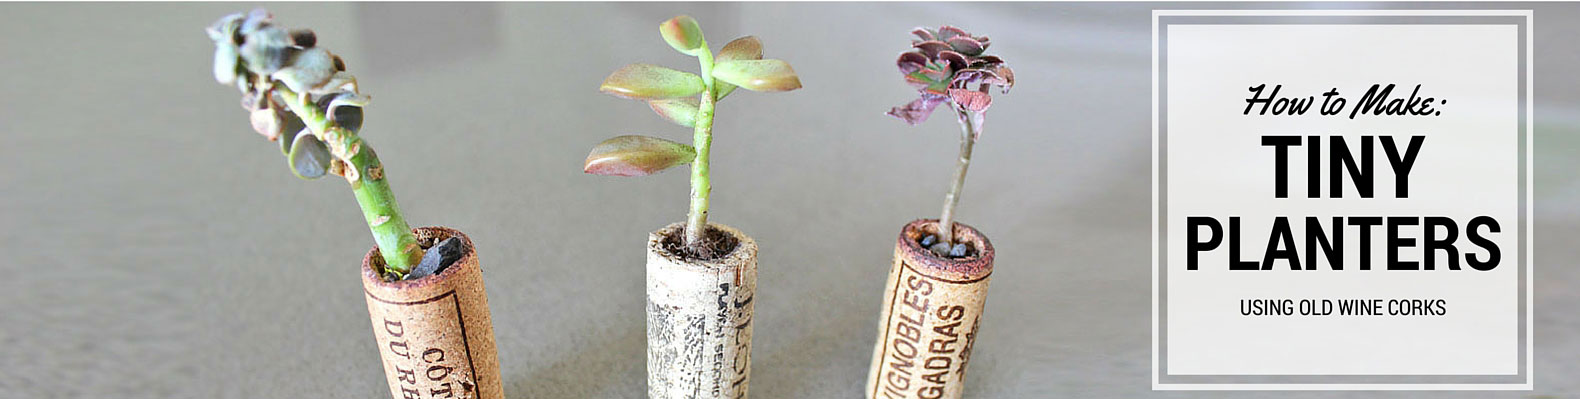 Diy projects inhabitat green design innovation architecture how to recycle old wine corks into cute mini planters solutioingenieria Images